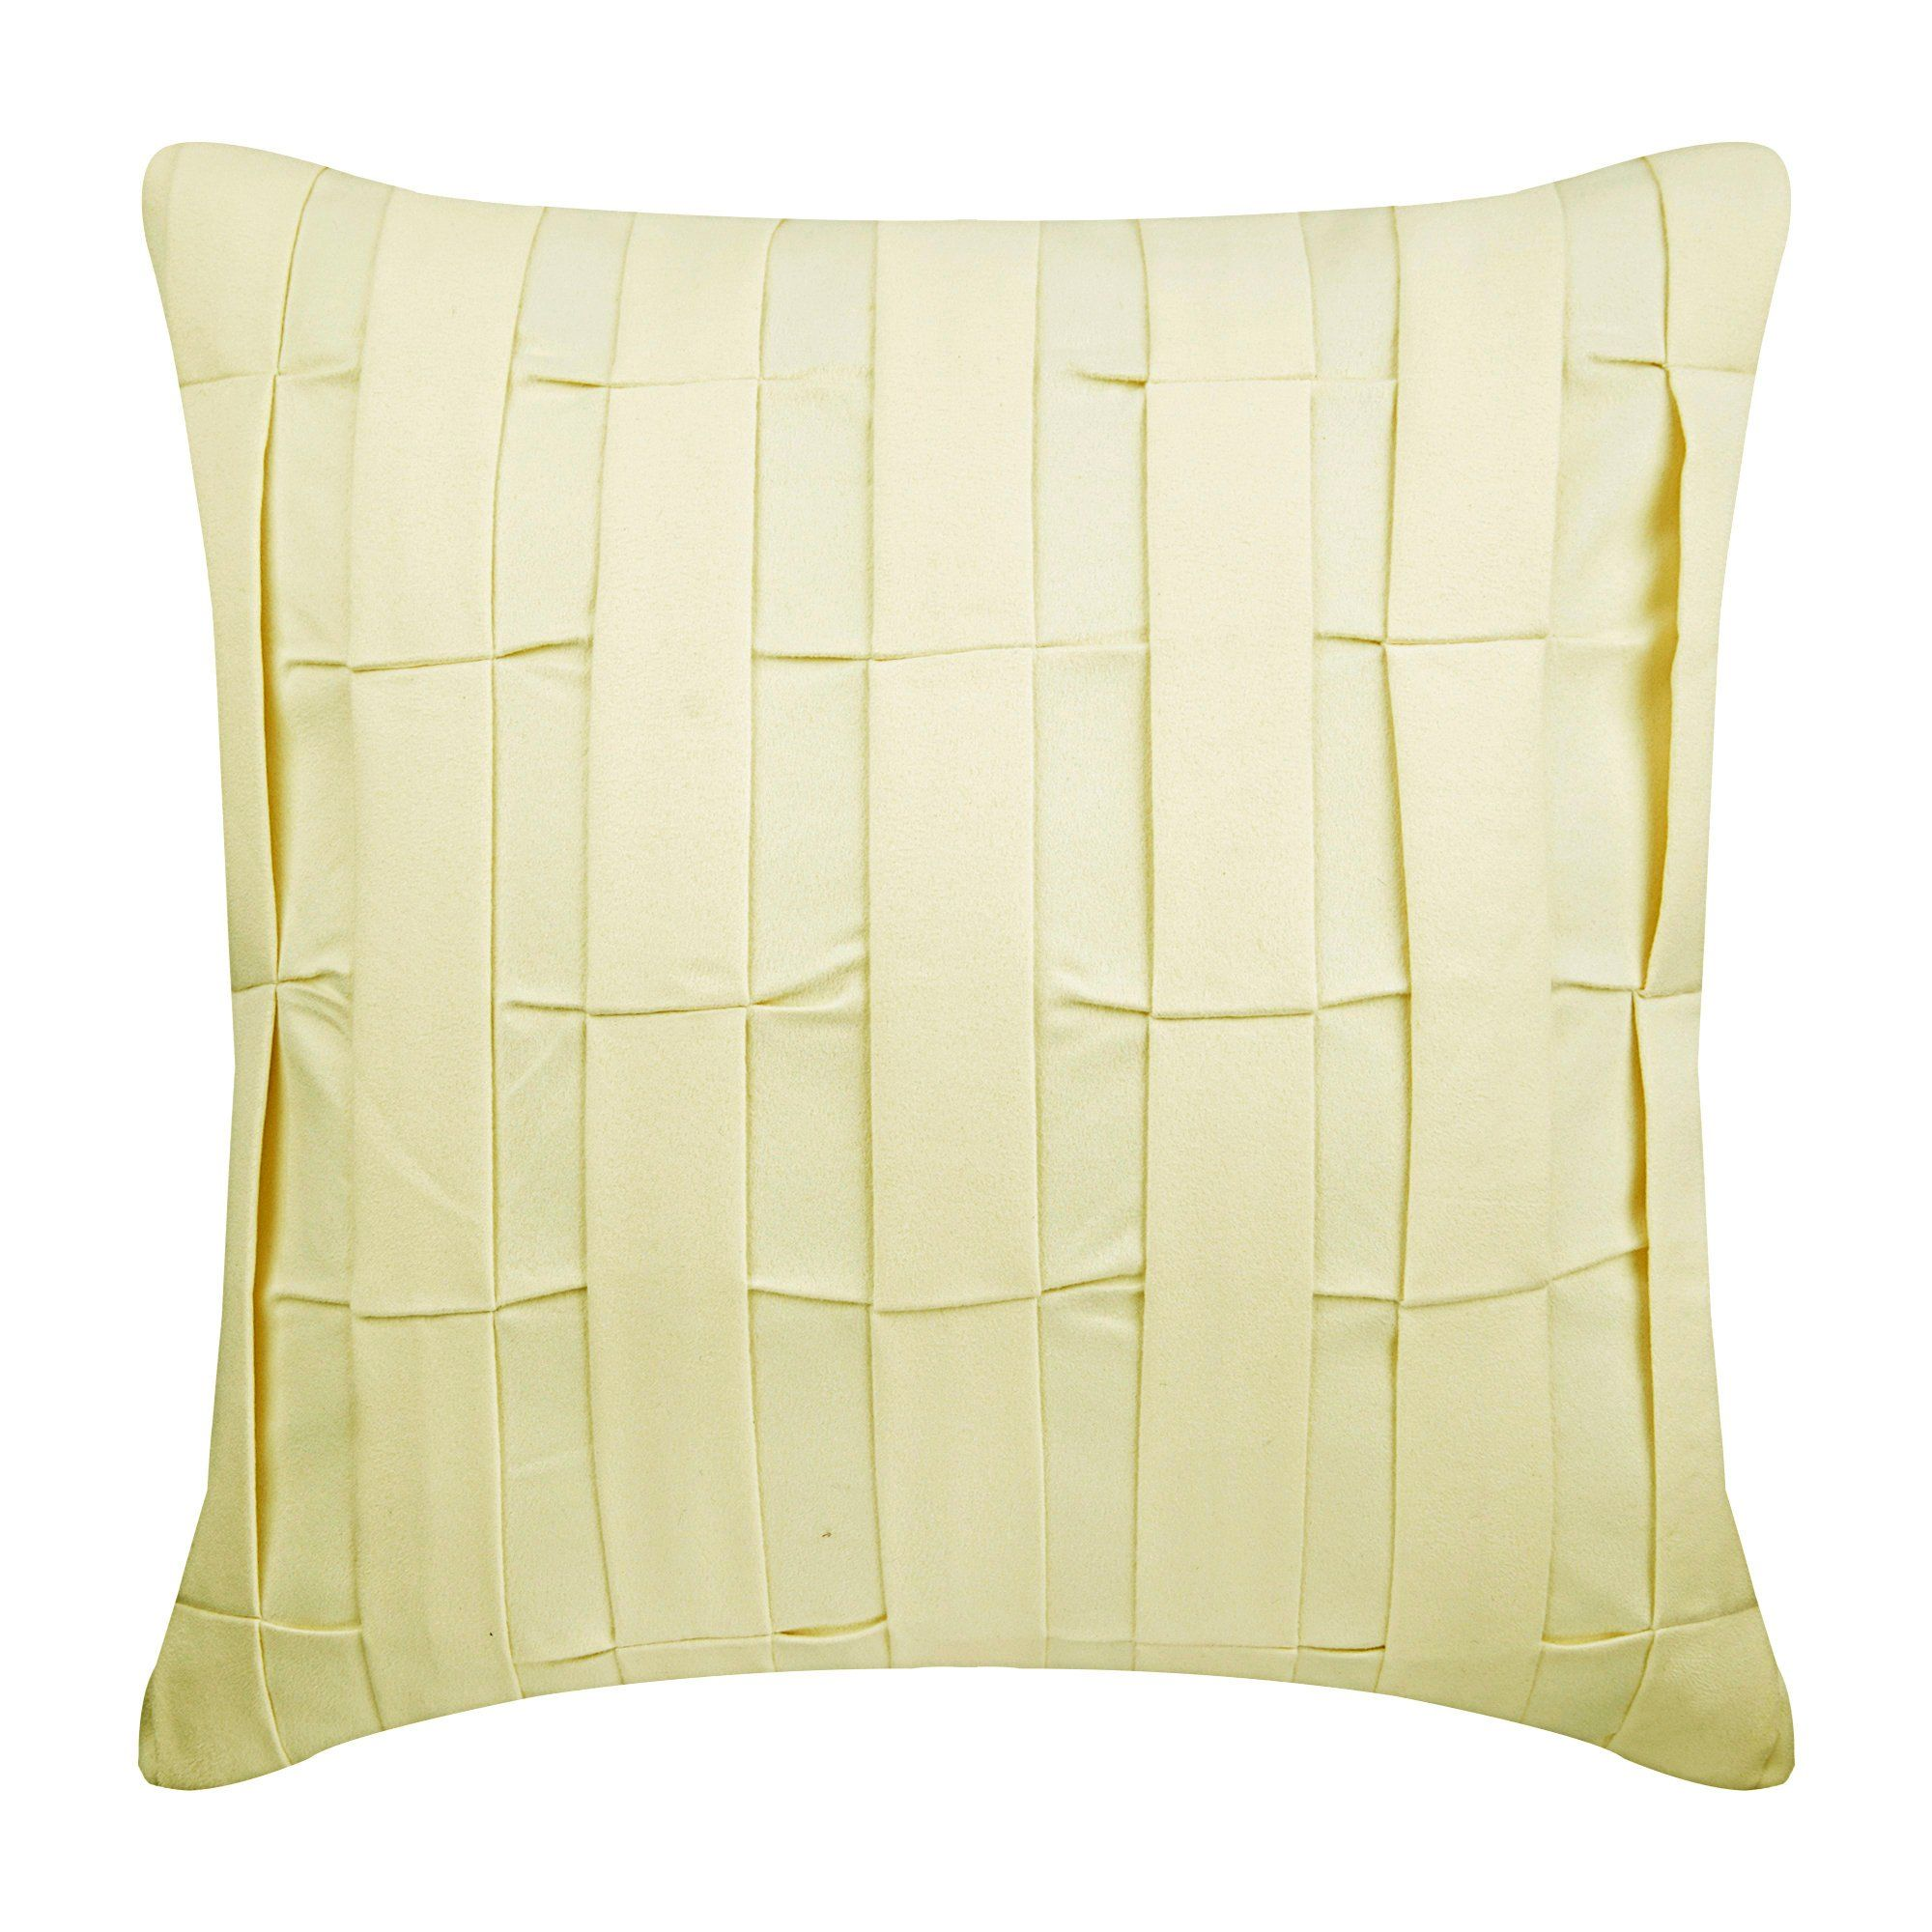 Cream Couch Sofa Cushion Covers 12 X 12 Pillow Covers Suede